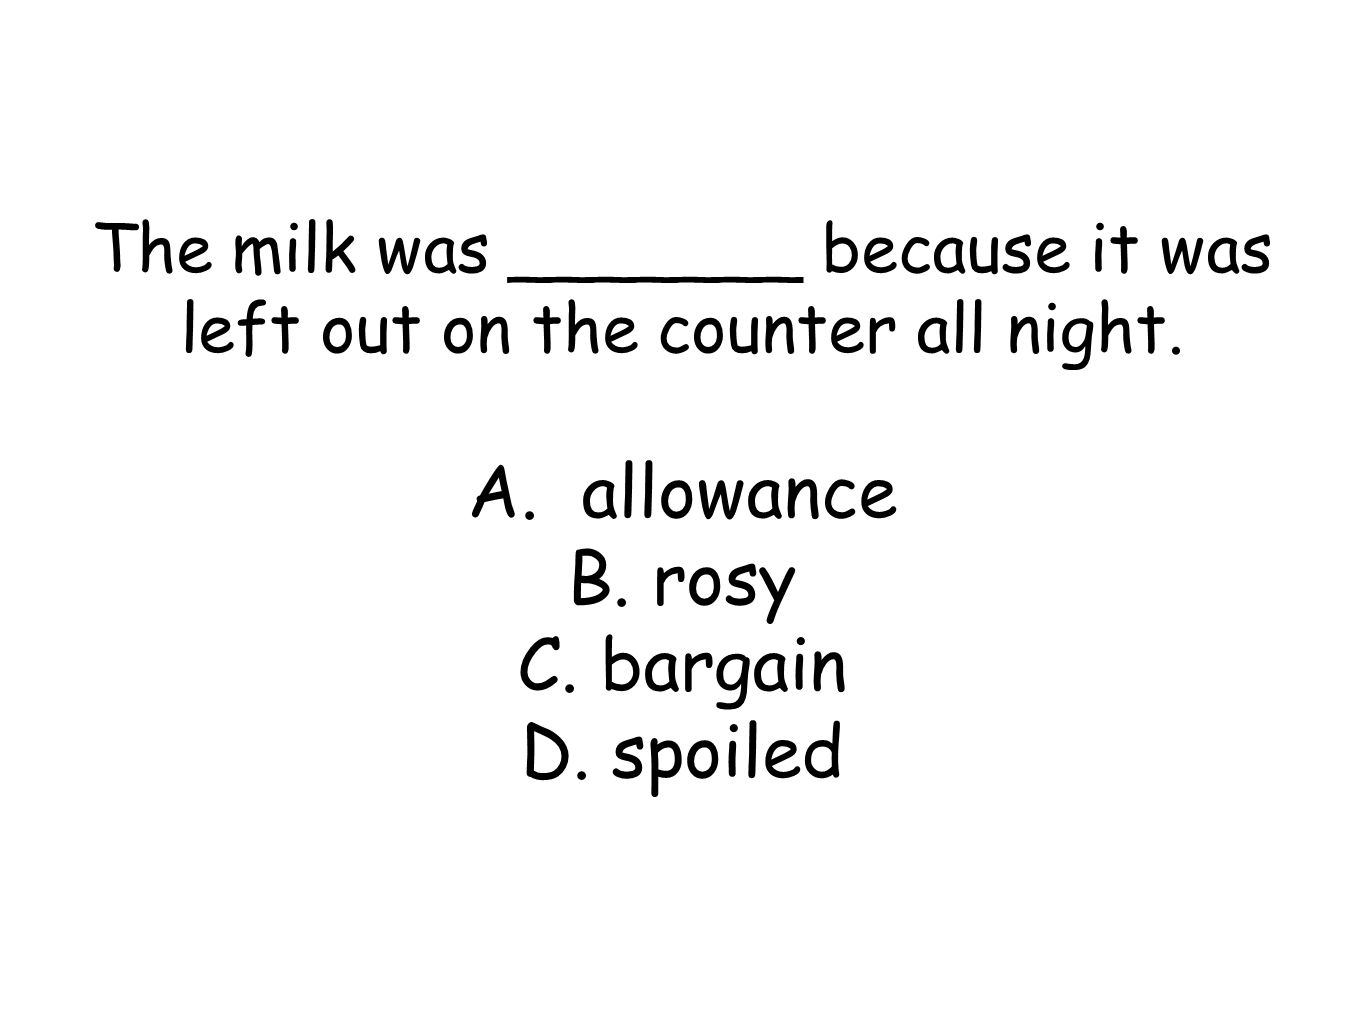 The milk was _______ because it was left out on the counter all night. A. allowance B. rosy C. bargain D. spoiled